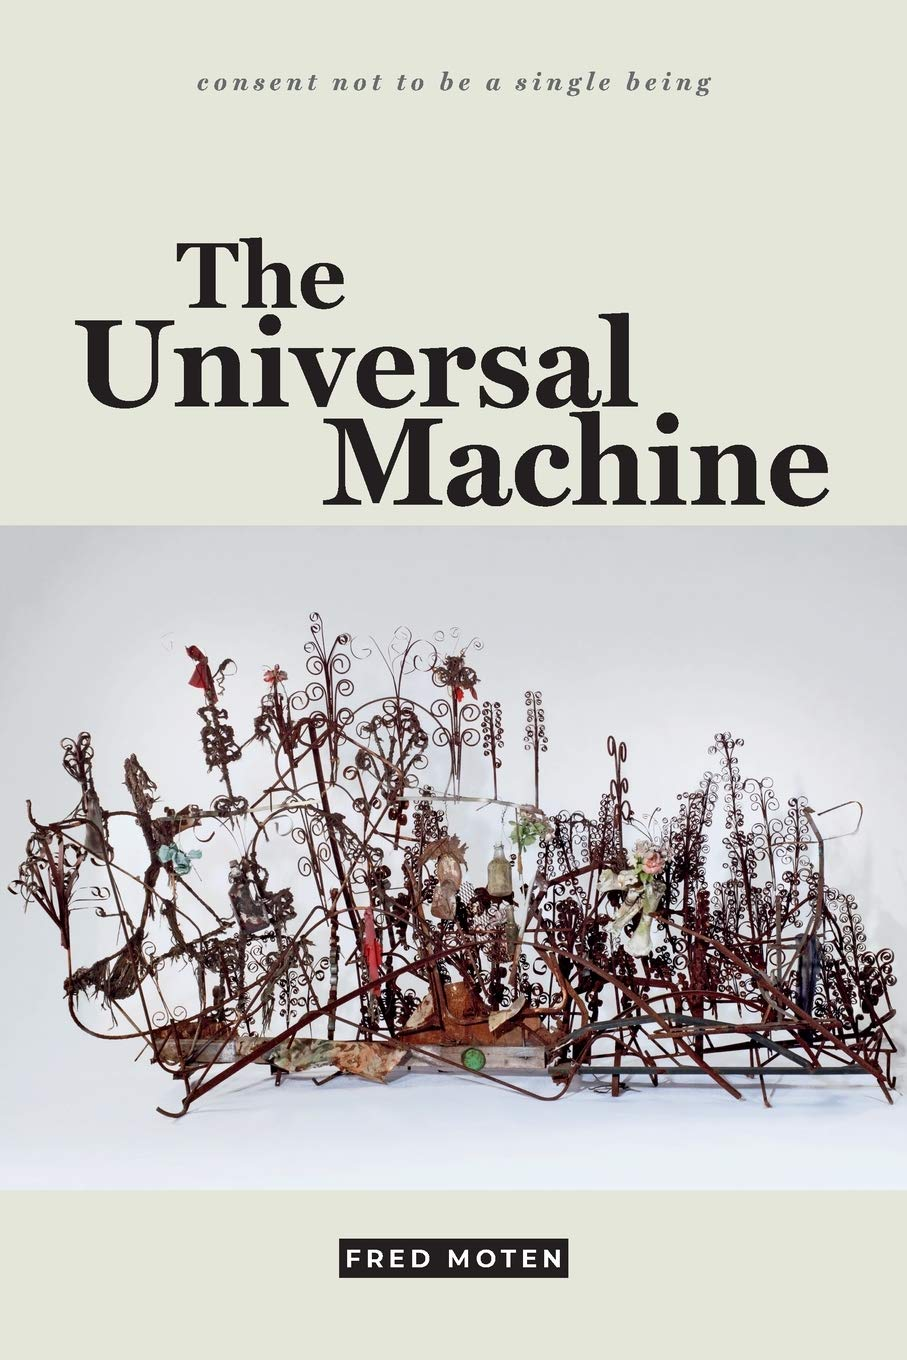 The Universal Machine by Fred Moten